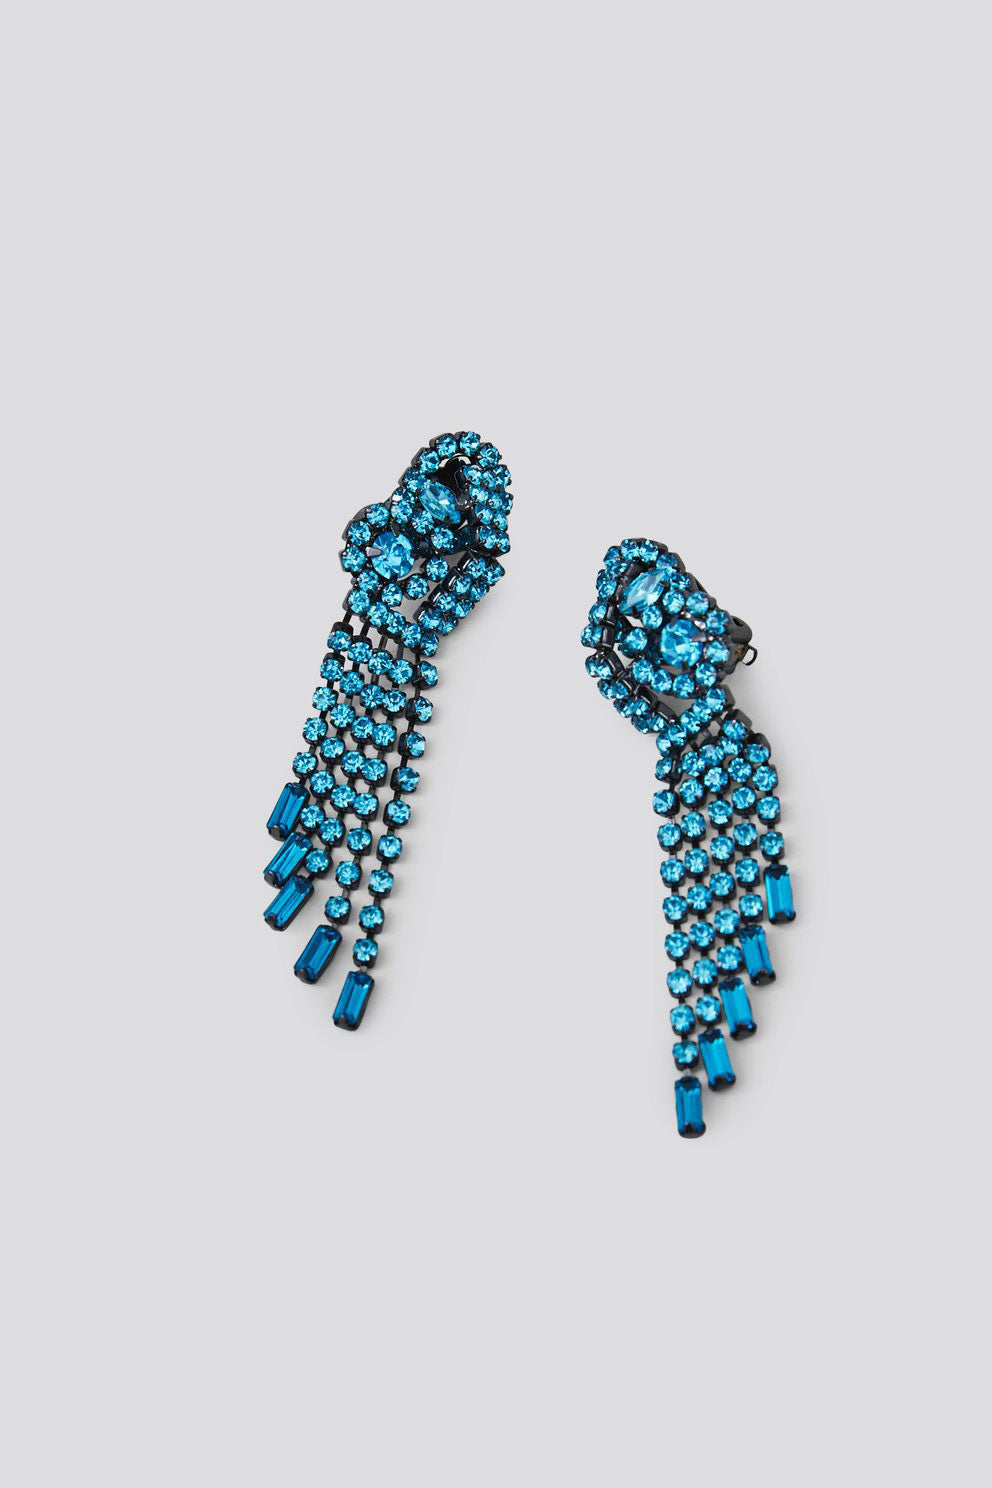 RACHEL COMEY - Rerun Earrings, Aquamarine Rhinestone